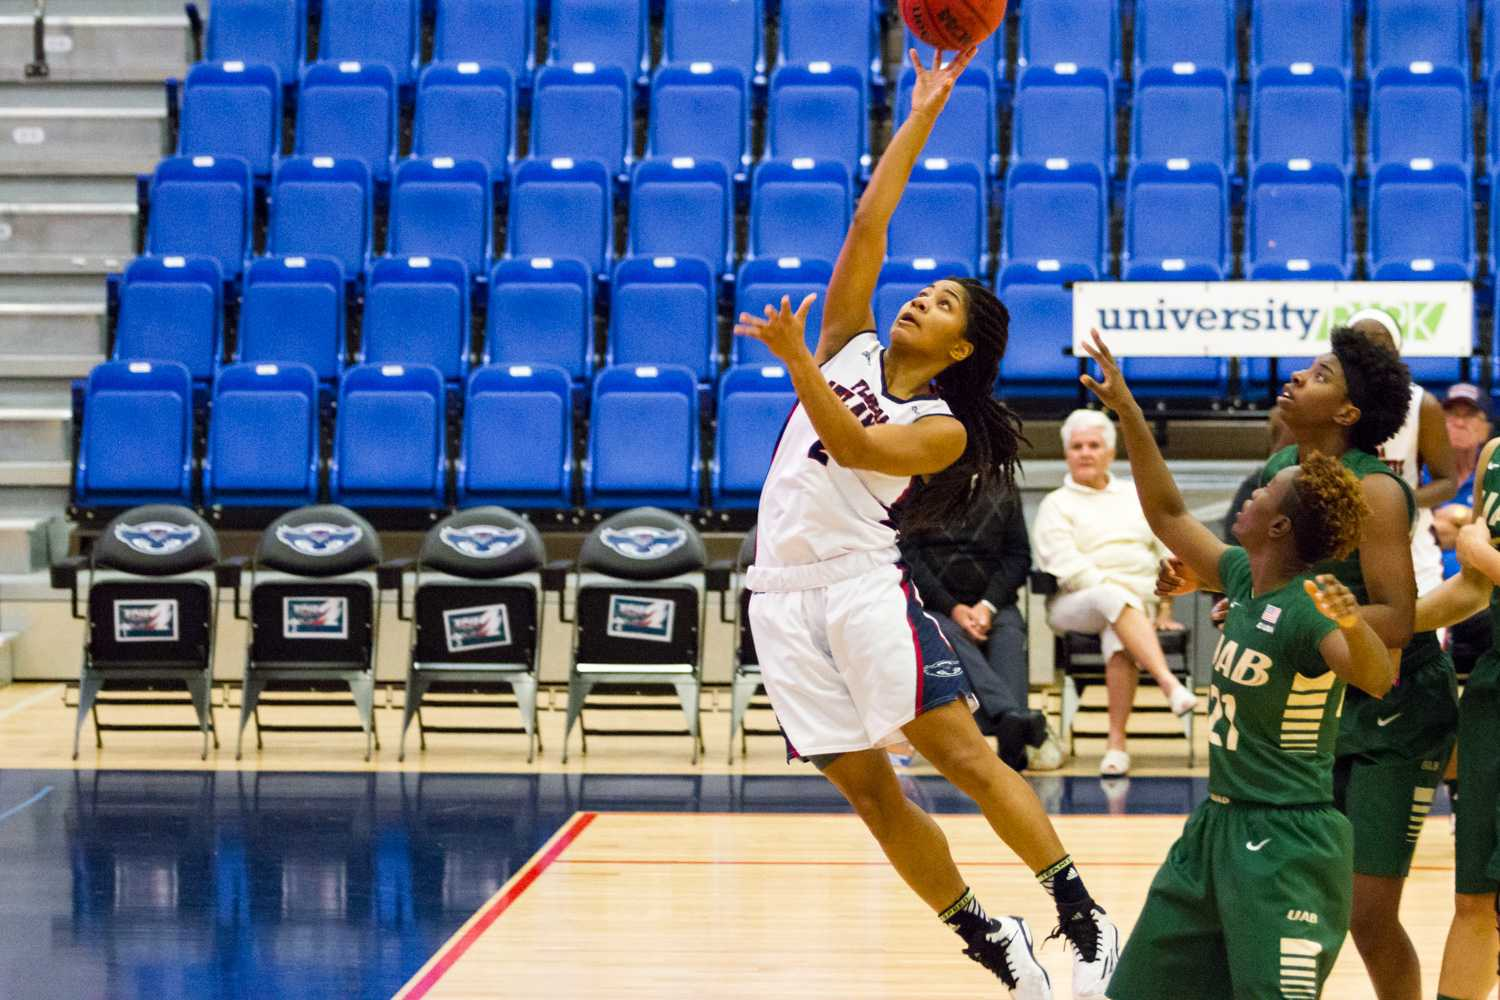 Shaneese Bailey lays in a basket. The sophomore guard scored 29 points in a 66-56 win over UAB.